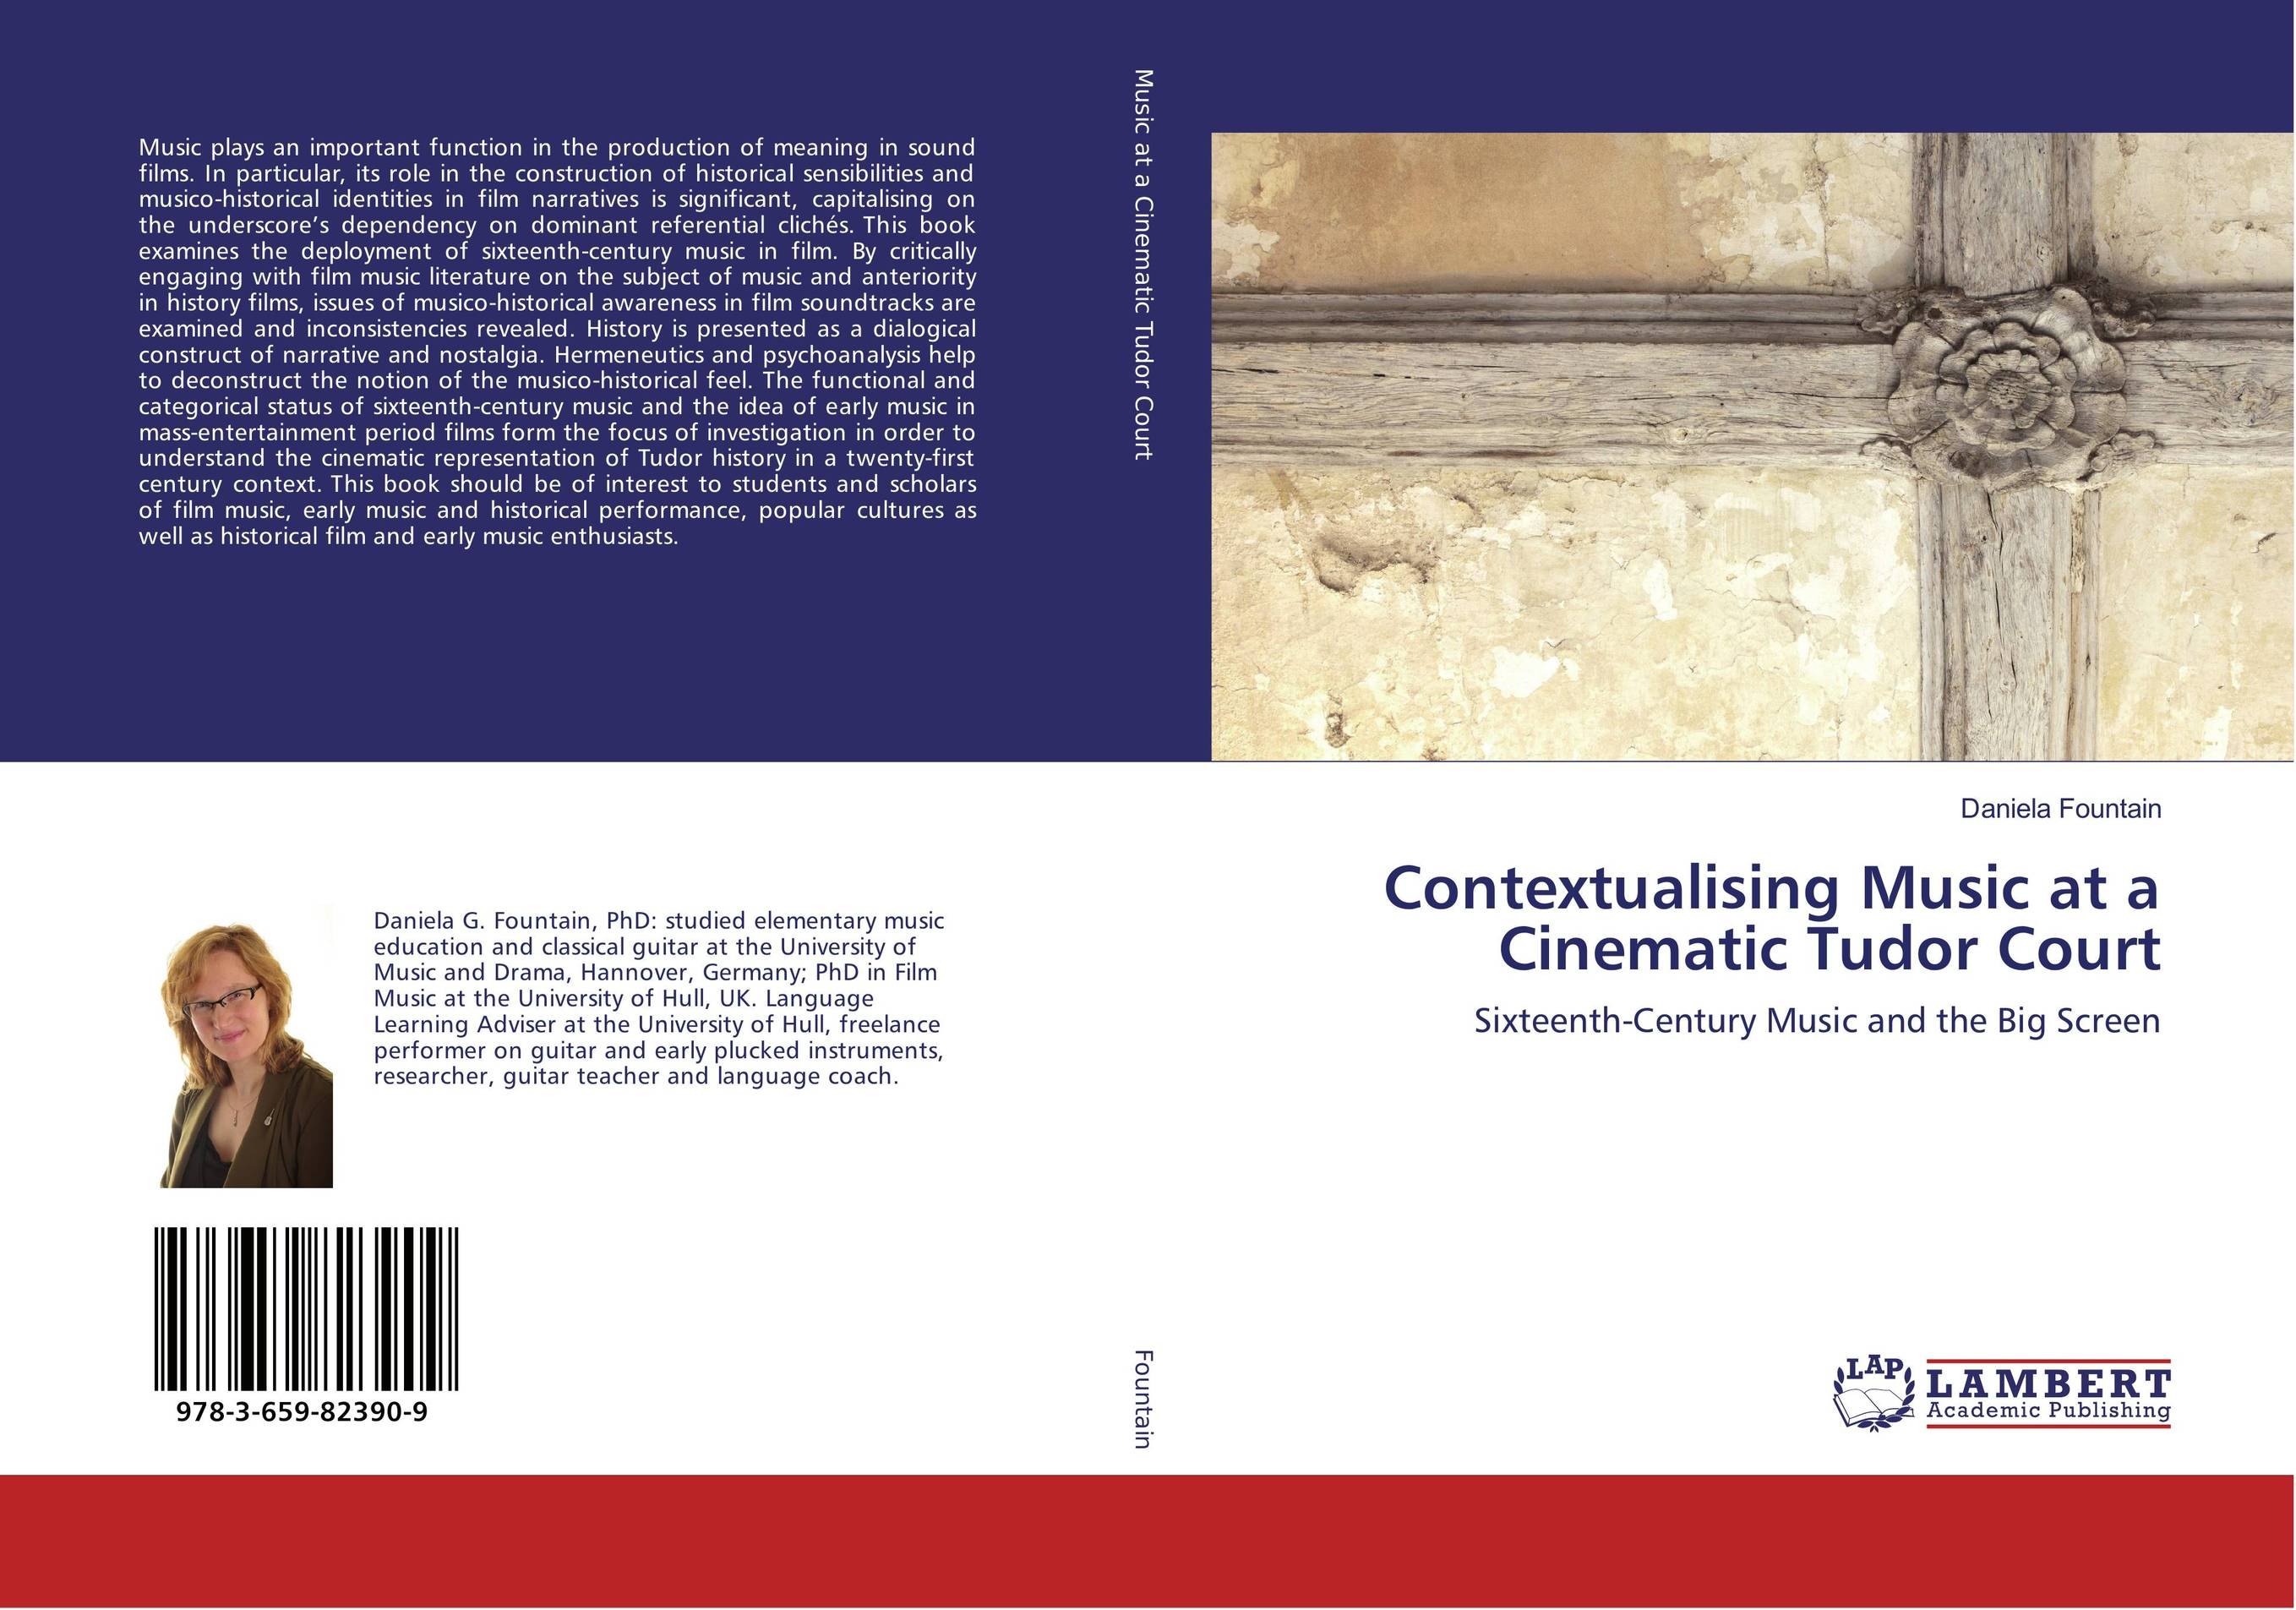 Contextualising Music at a Cinematic Tudor Court clio in the italian garden – twenty–first century studies in historical methods and theoretical perspectives